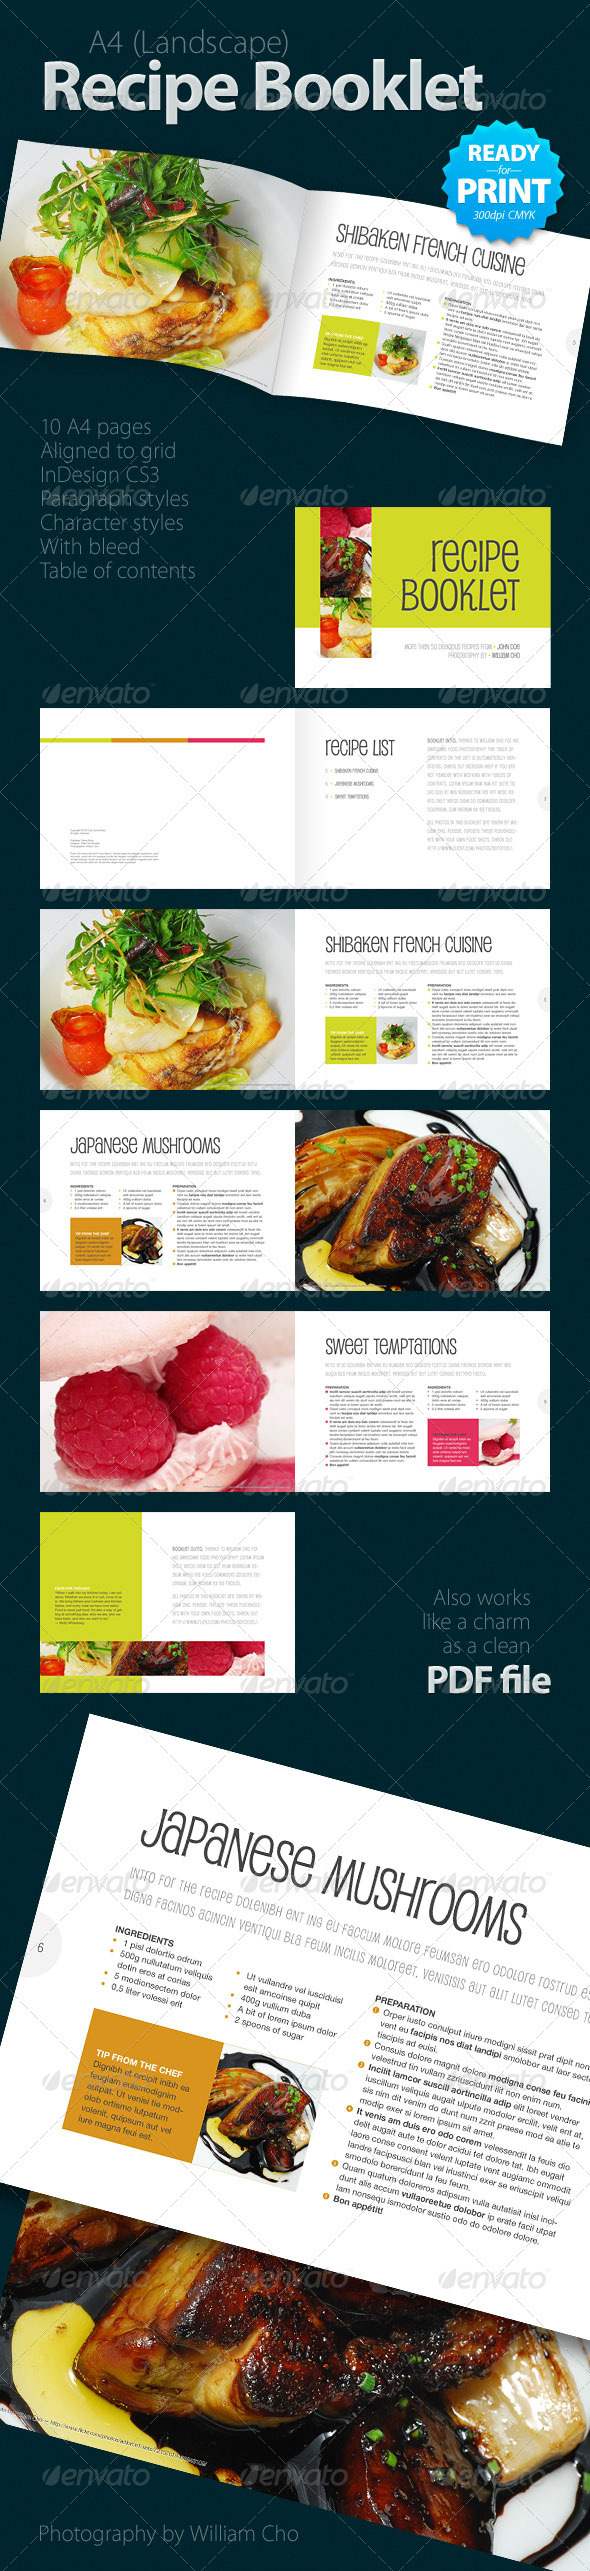 recipe booklet design